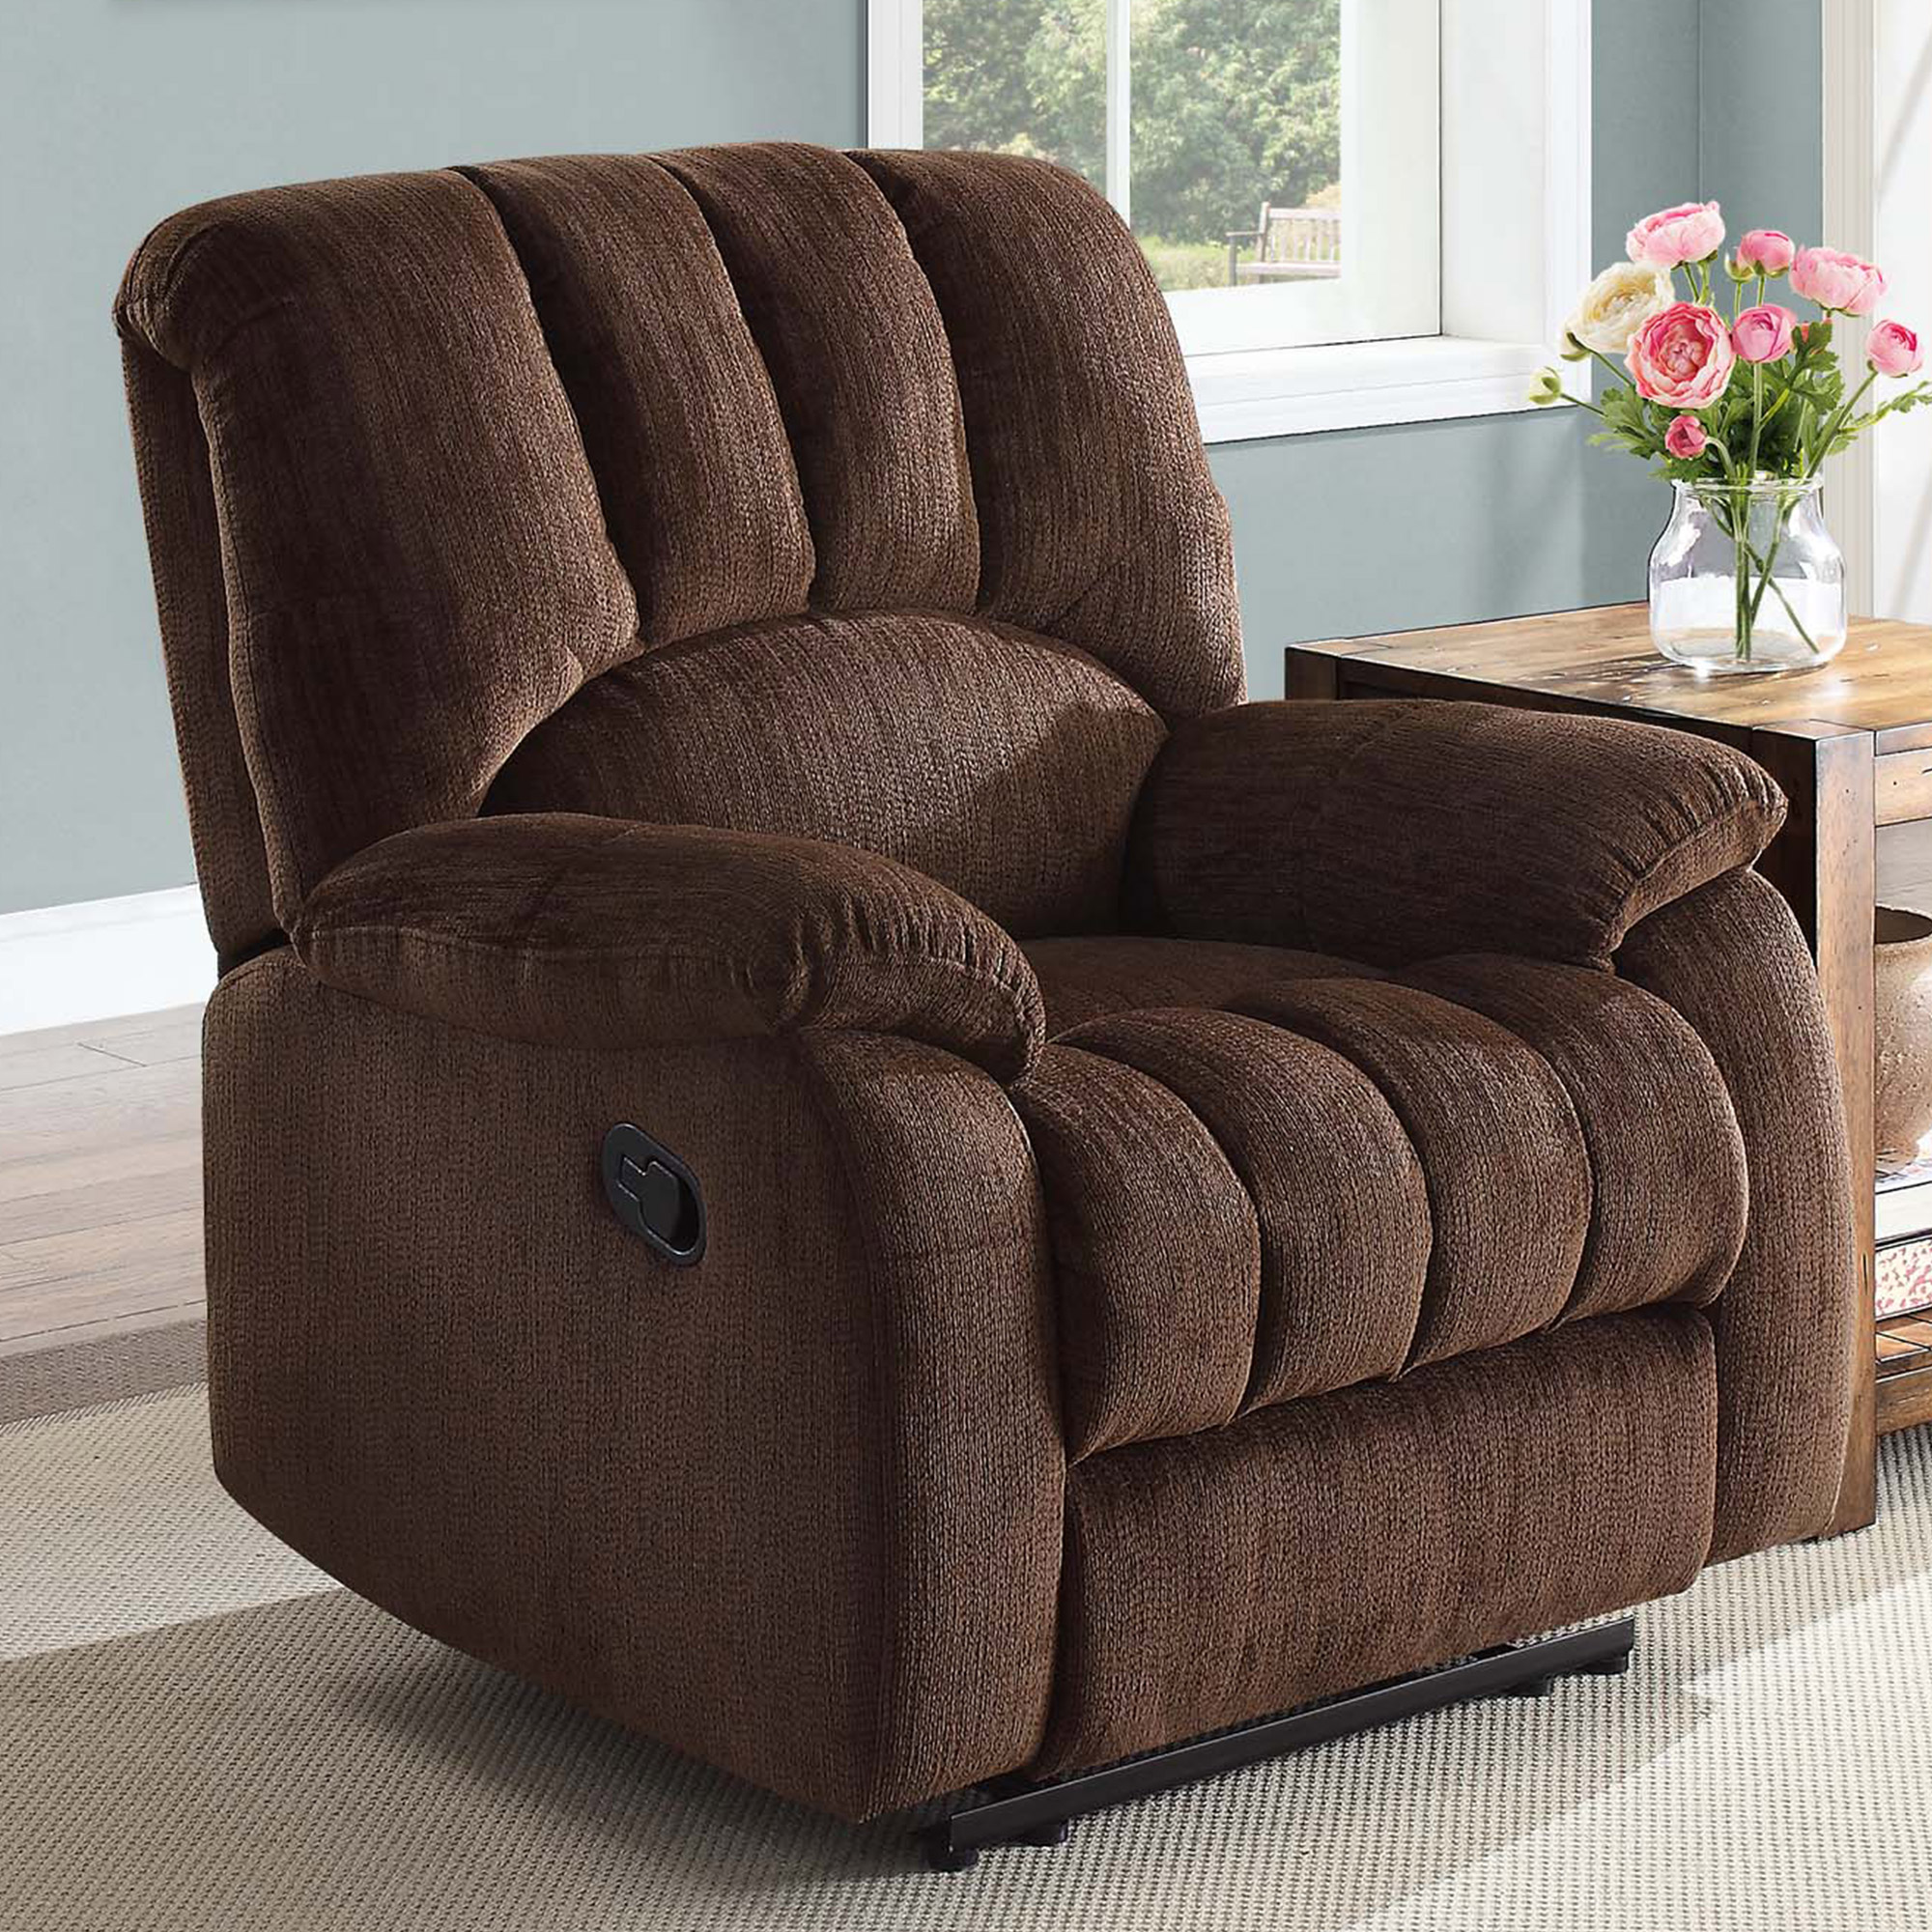 Superb Swivel Recliner Chairs